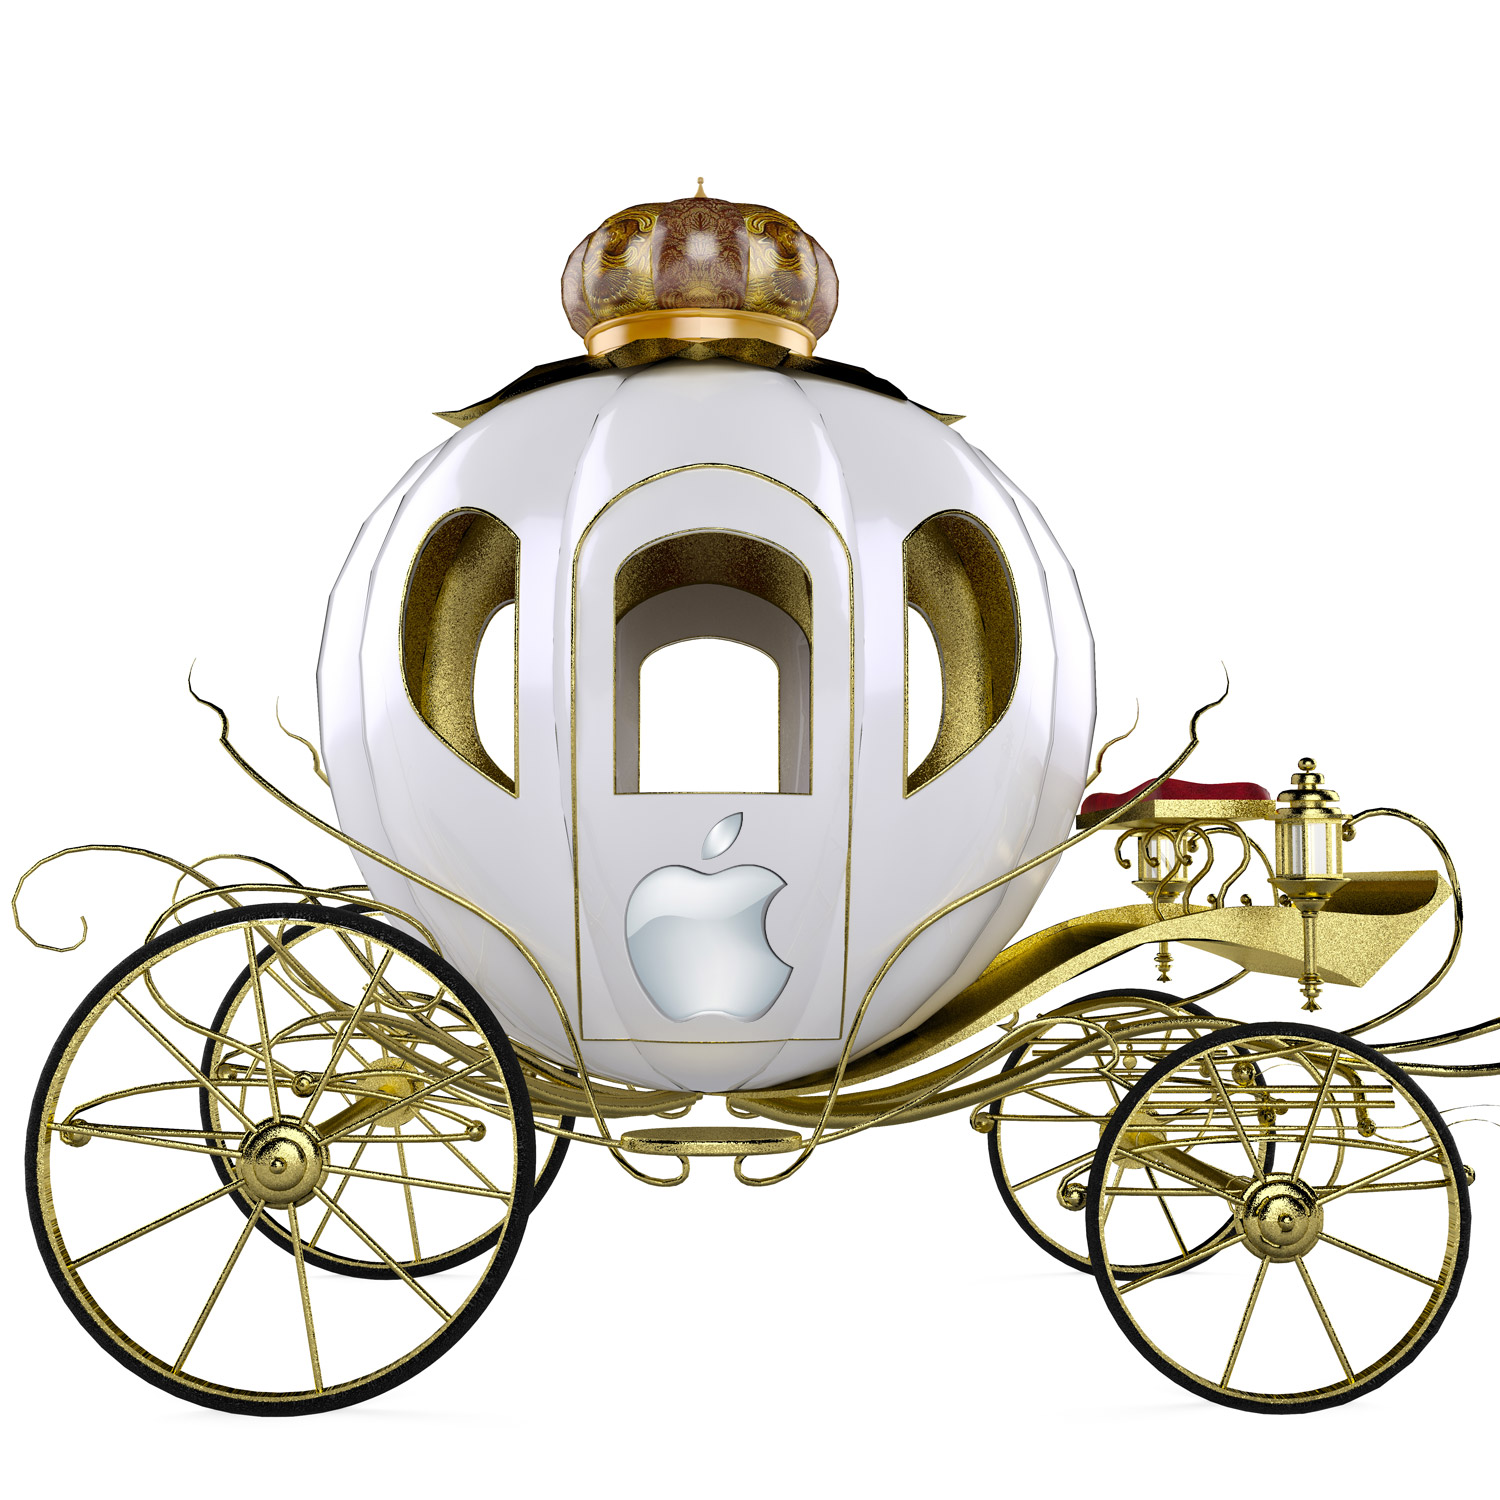 Carriage with Apple Logo